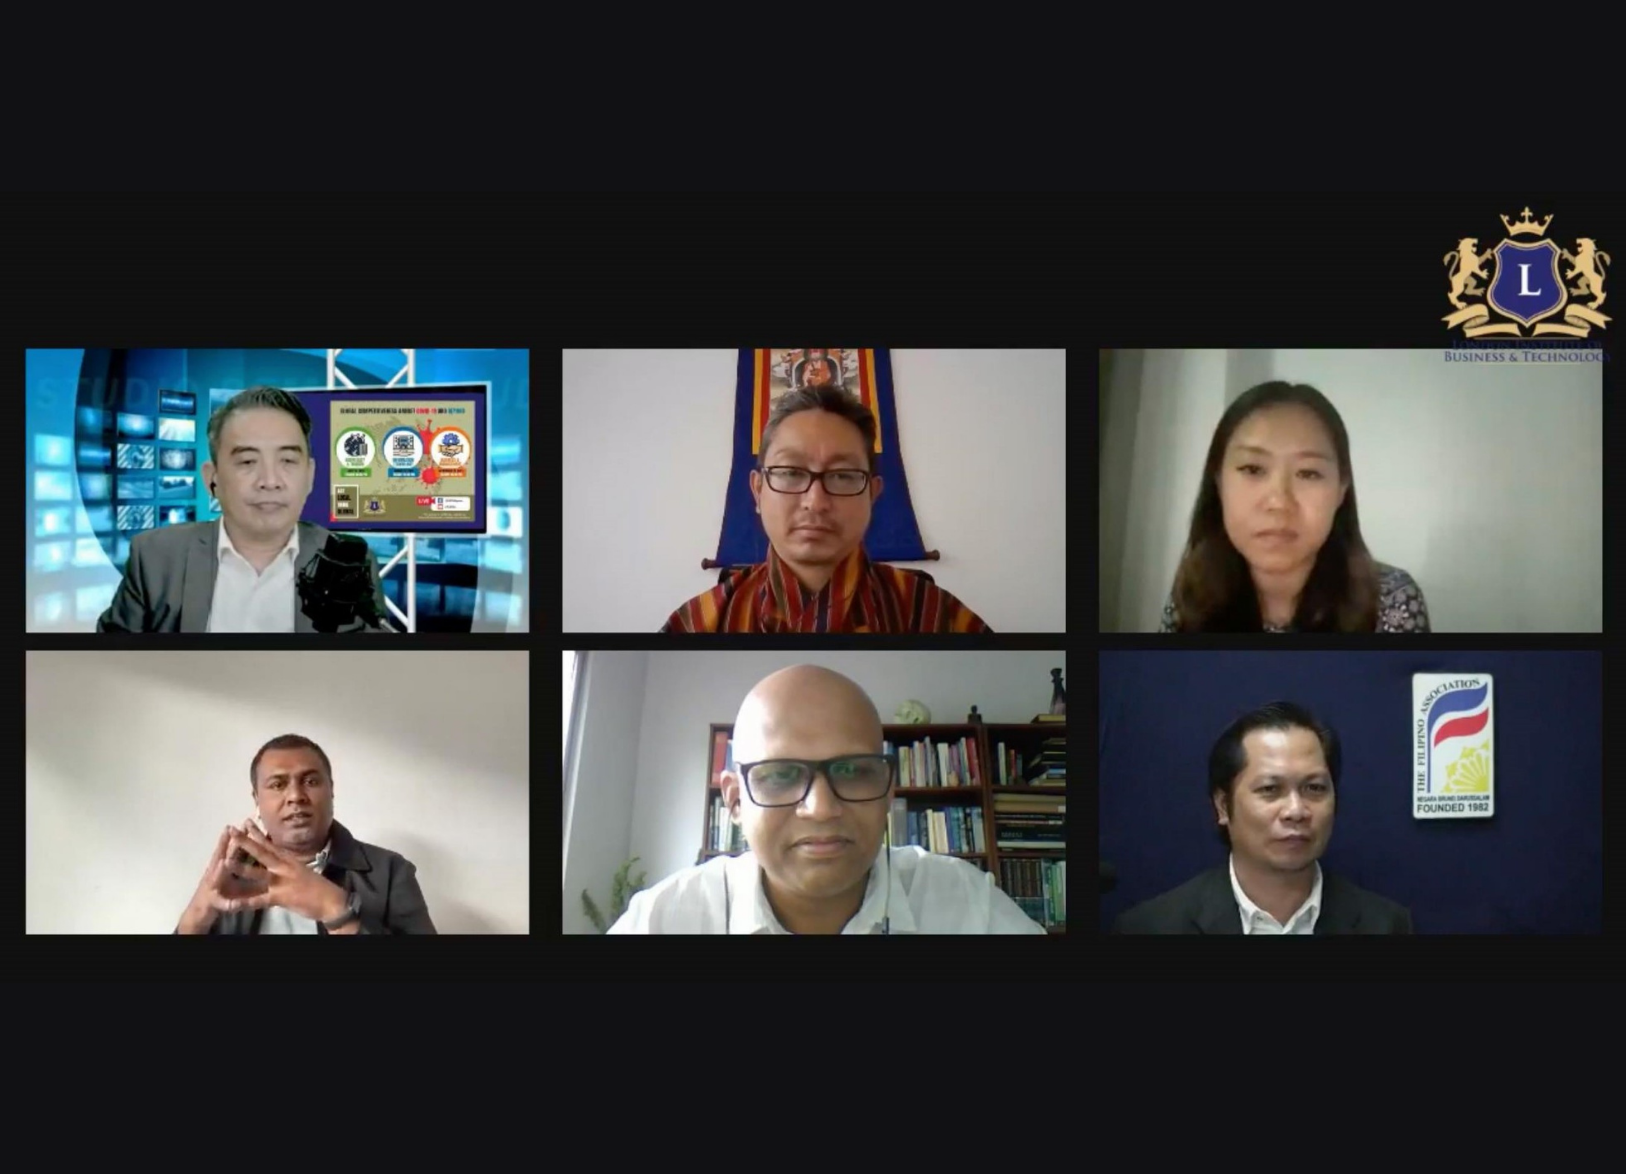 LIBT Philippines successfully concludes three-part webinar series